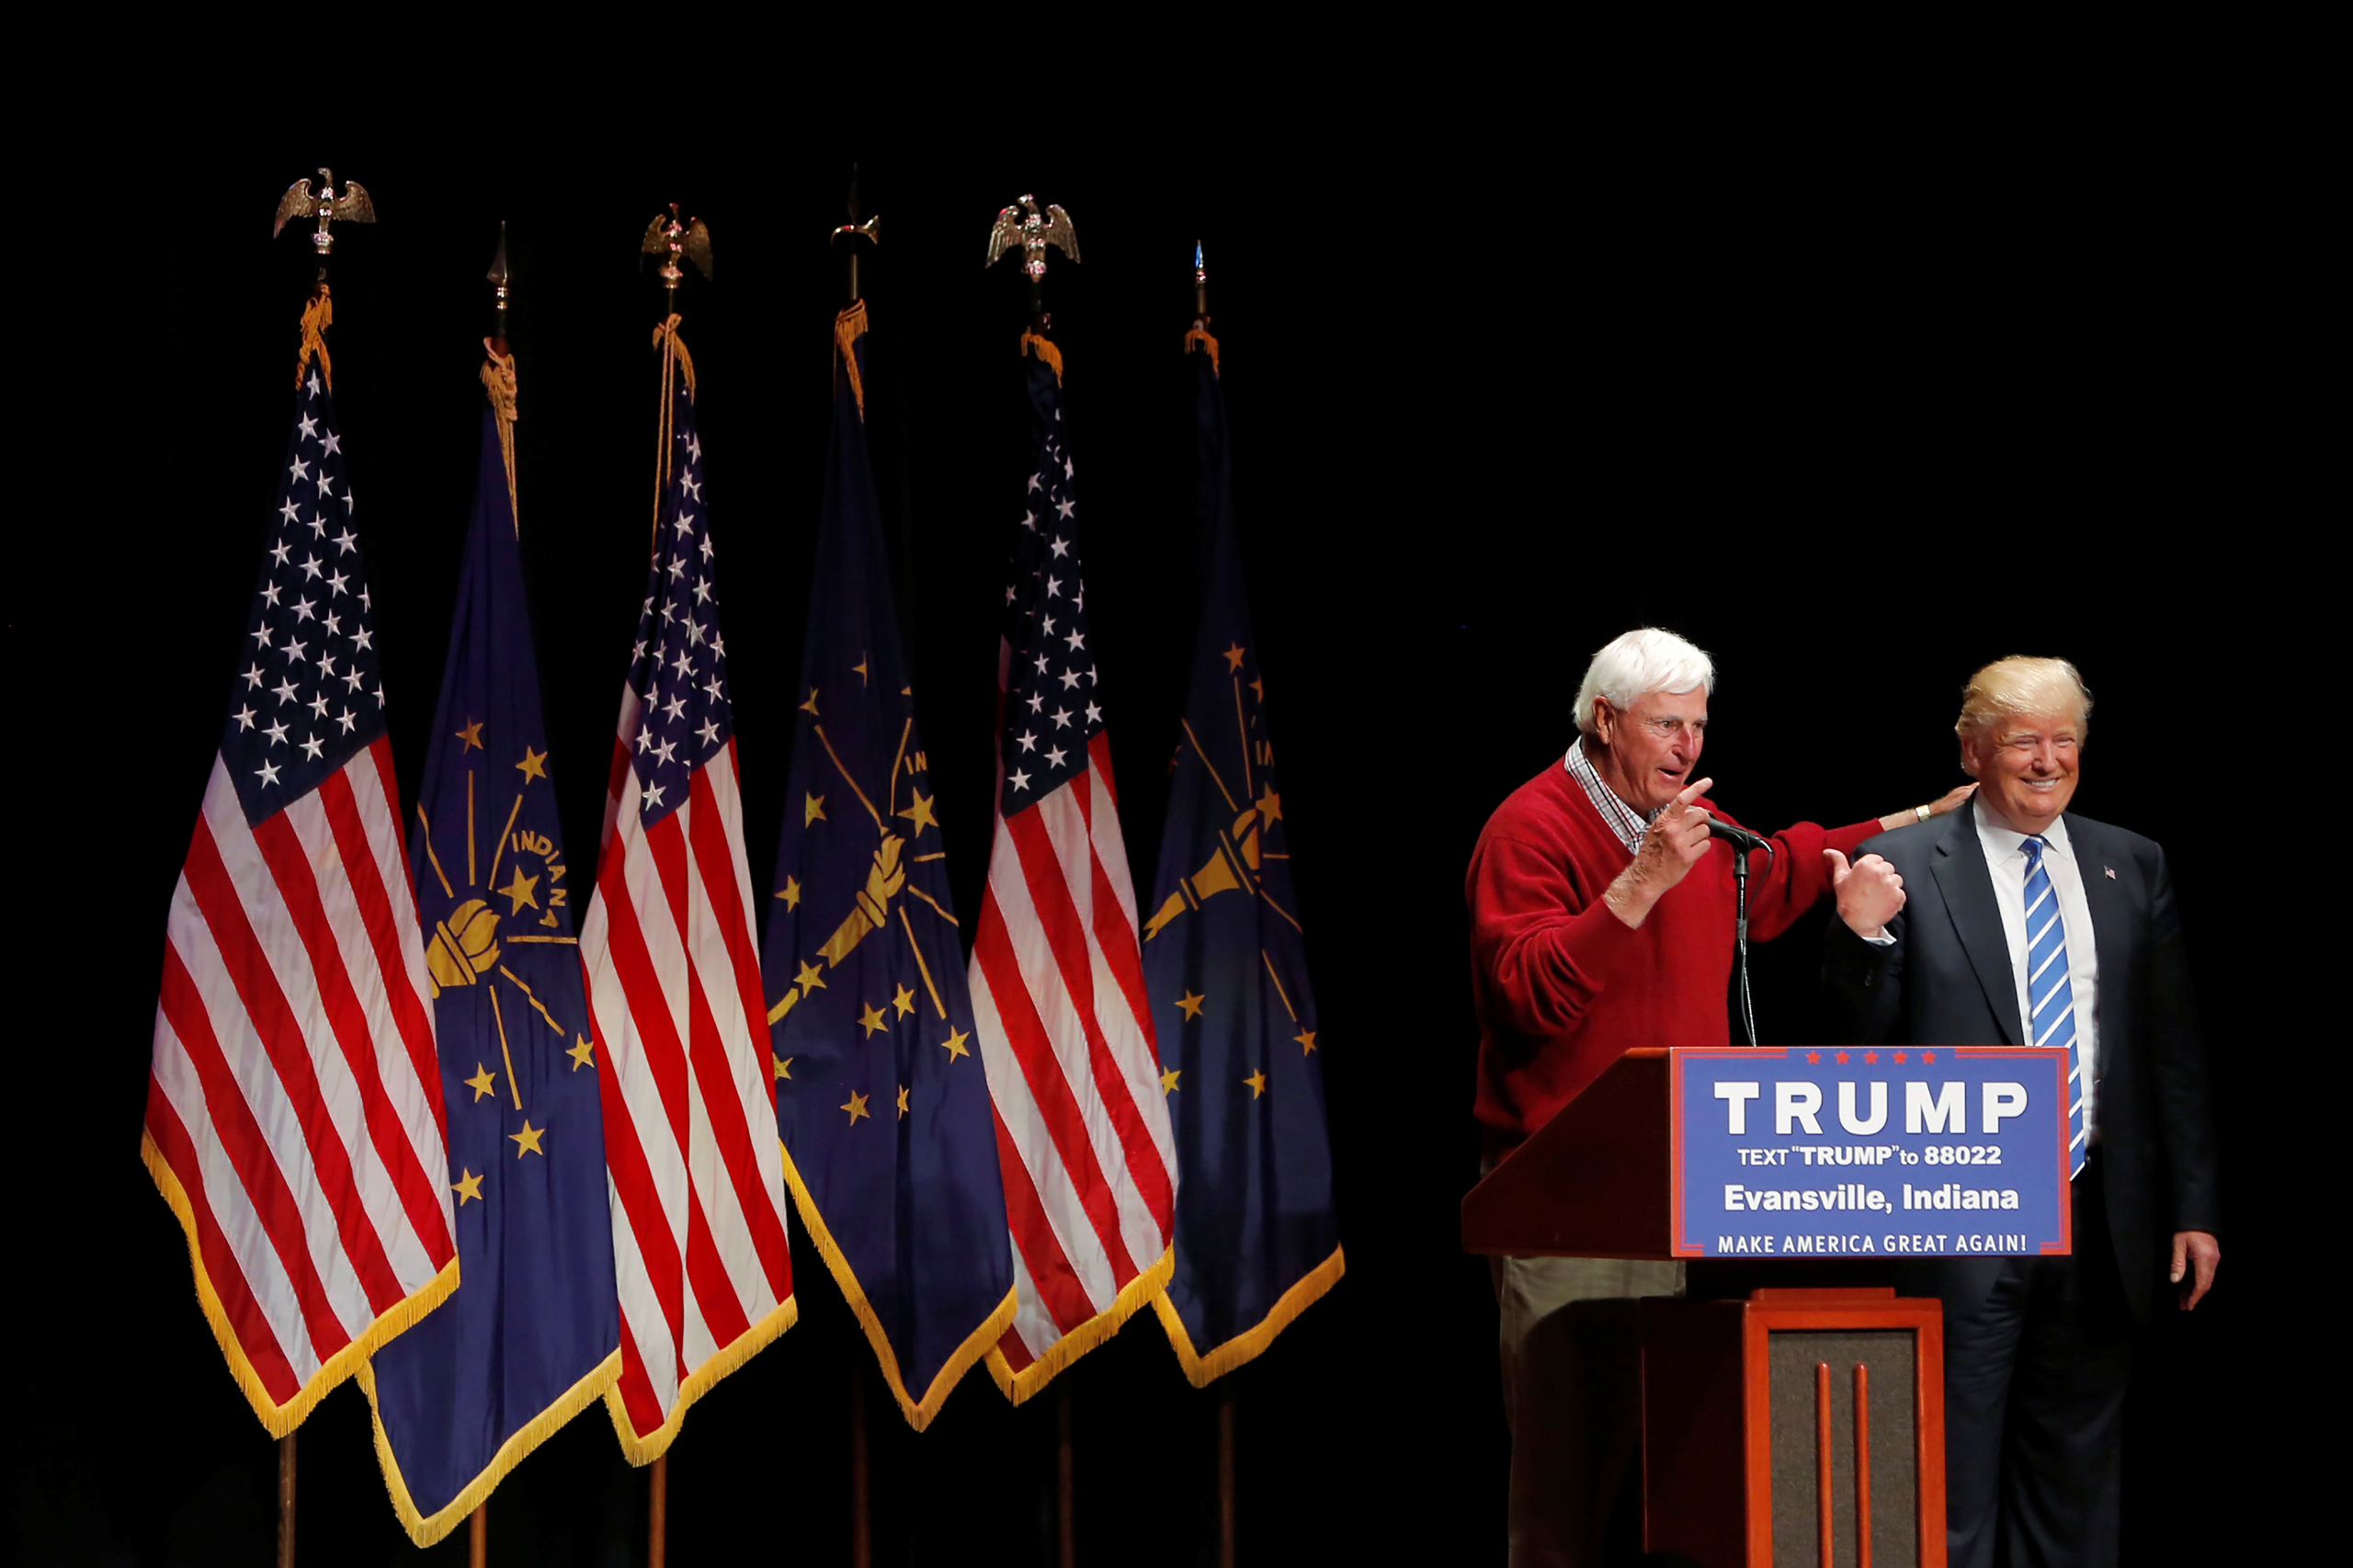 Republican presidential candidate Donald Trump is joined on stage by former Indiana University basketball coach Bob Knight at a campaign event at the Old National Events Plaza in Evansville, Indiana, on April 28, 2016.